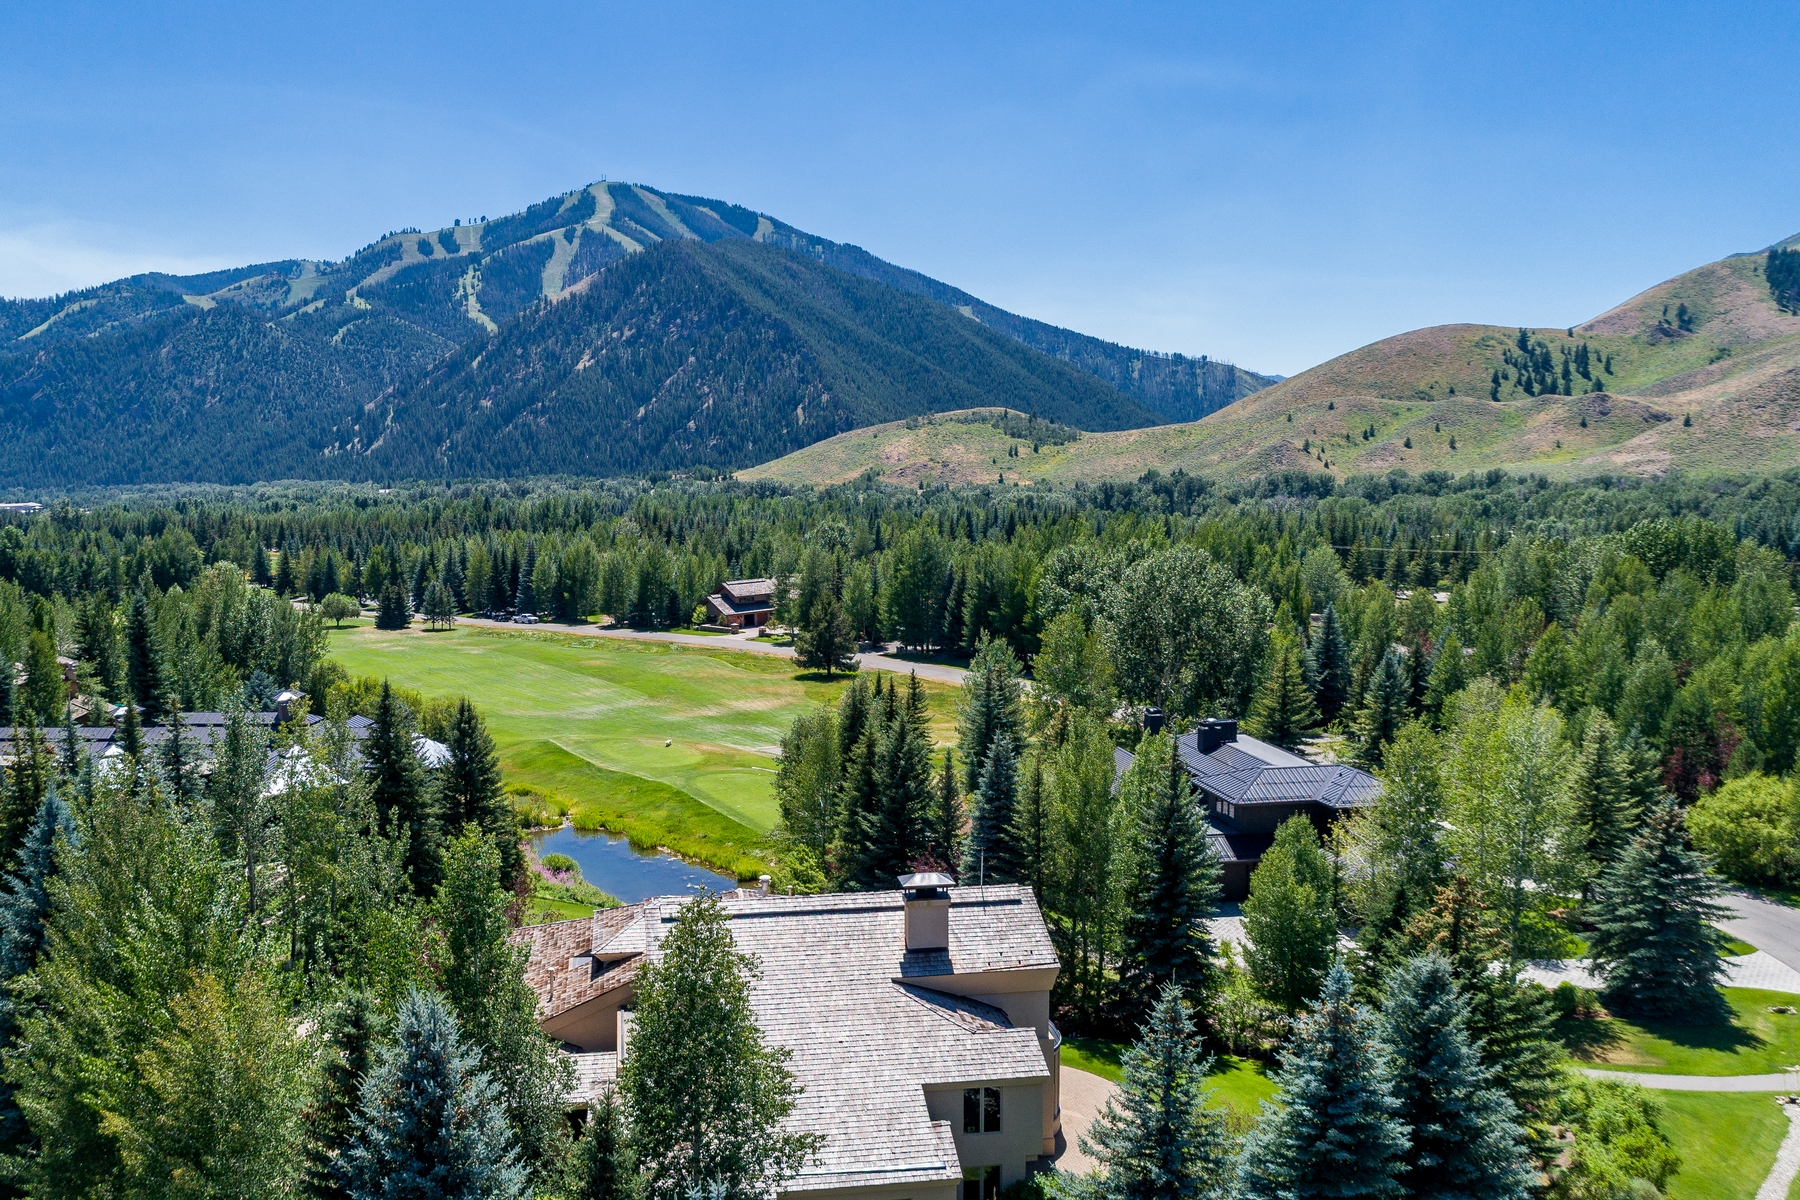 Additional photo for property listing at Barry Berkus Designed Home On Prime Bigwood Golf Course Property 195 S Bigwood Dr S Ketchum, Idaho 83340 États-Unis